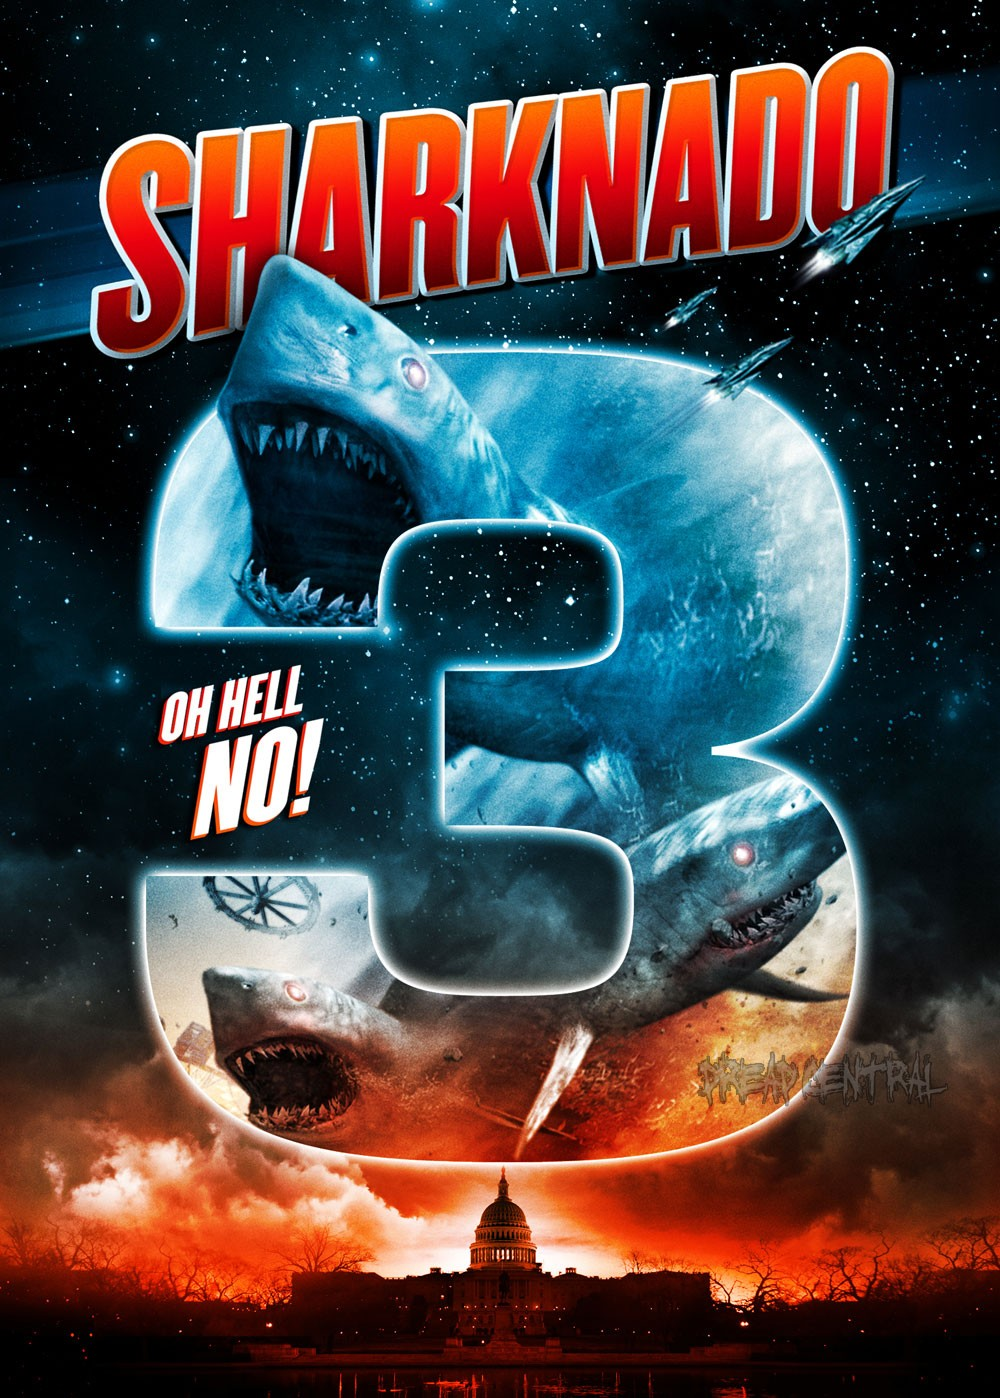 Sharknado 3 Is The Perfect Storm | Sharknado 3